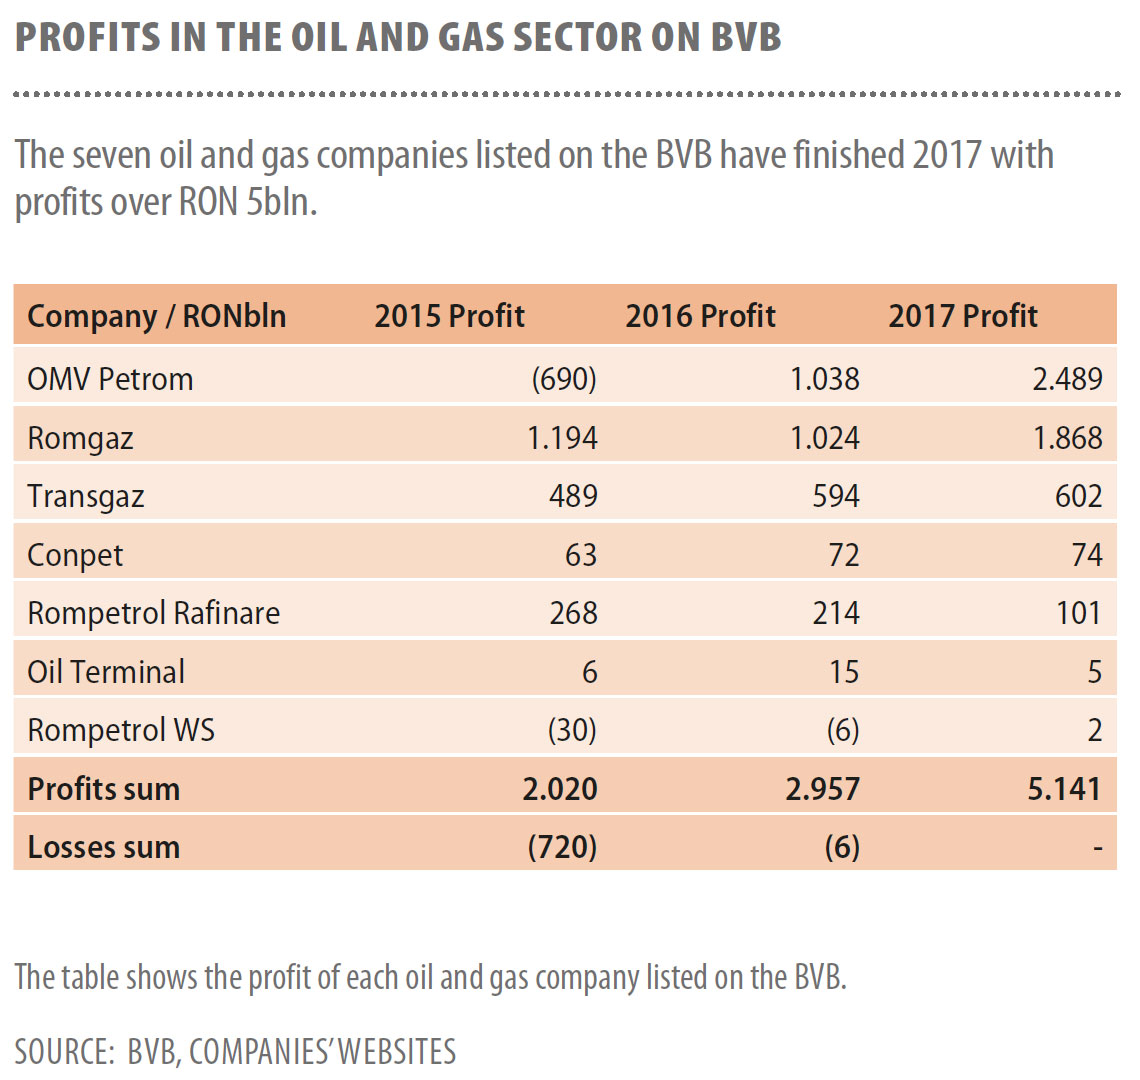 Profits-in-the-oil-and-gas-sector-on-BVB